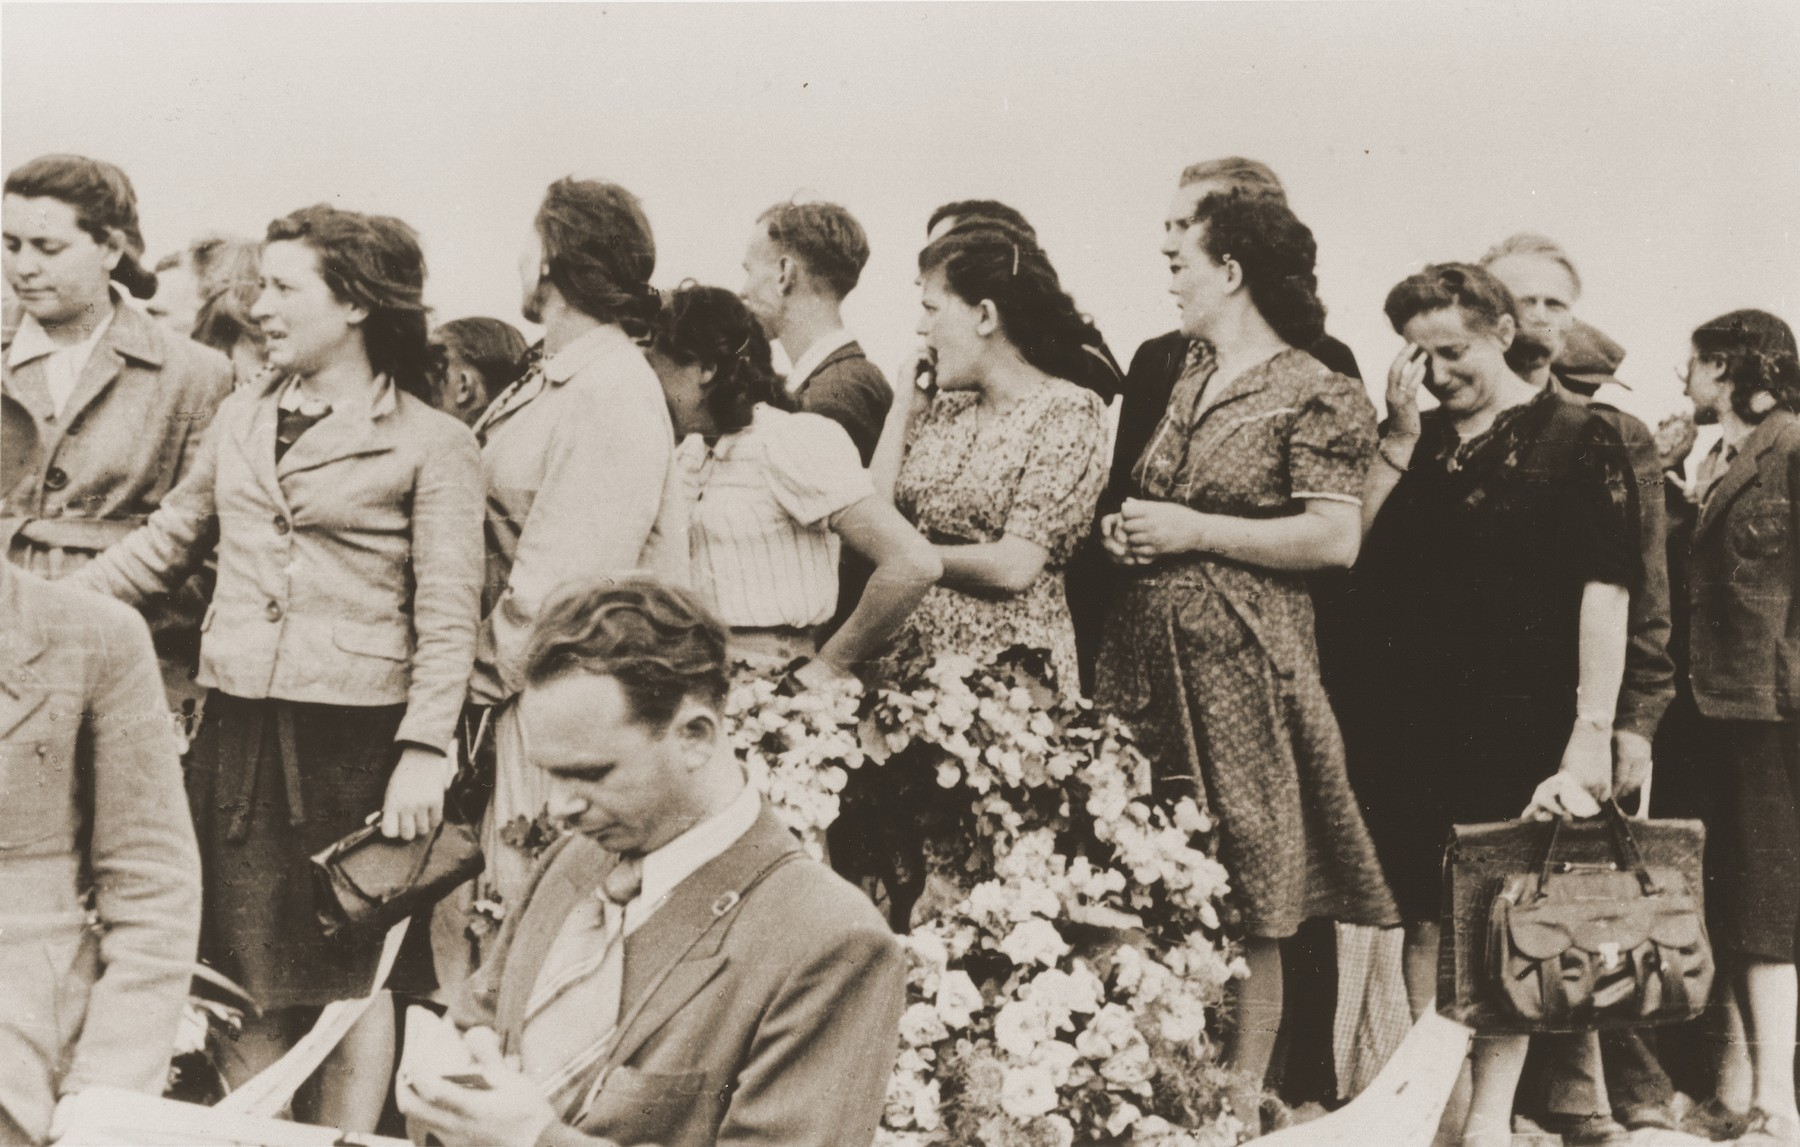 Mourners bearing a wreath, grieve at the funeral of the victims of the Kielce pogrom.  Pictured (forth from the right) is Chana Alpert.